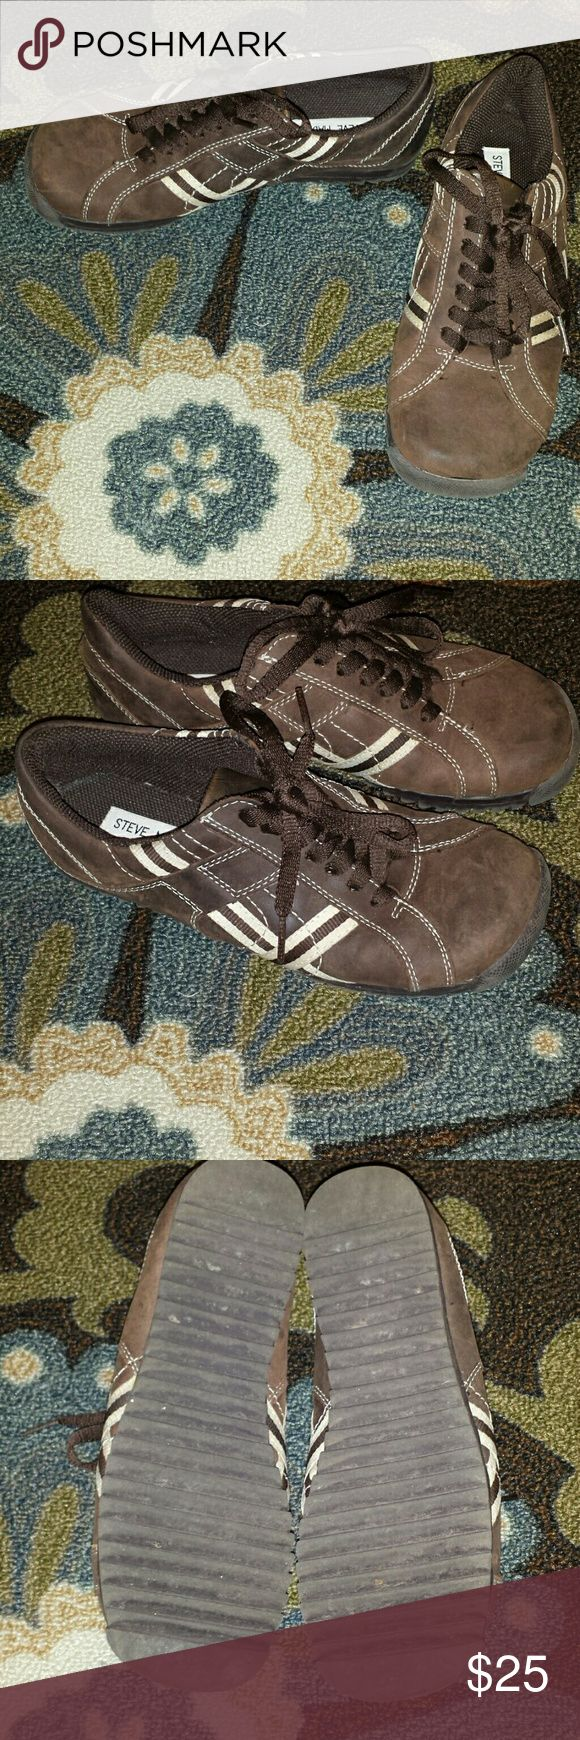 Steve Madden Brown Leather Sneakers, Size 6 Great condition very comfortable Steve Madden Brown with cream stitching  leather sneakers. Size 6. Steve Madden Shoes Sneakers